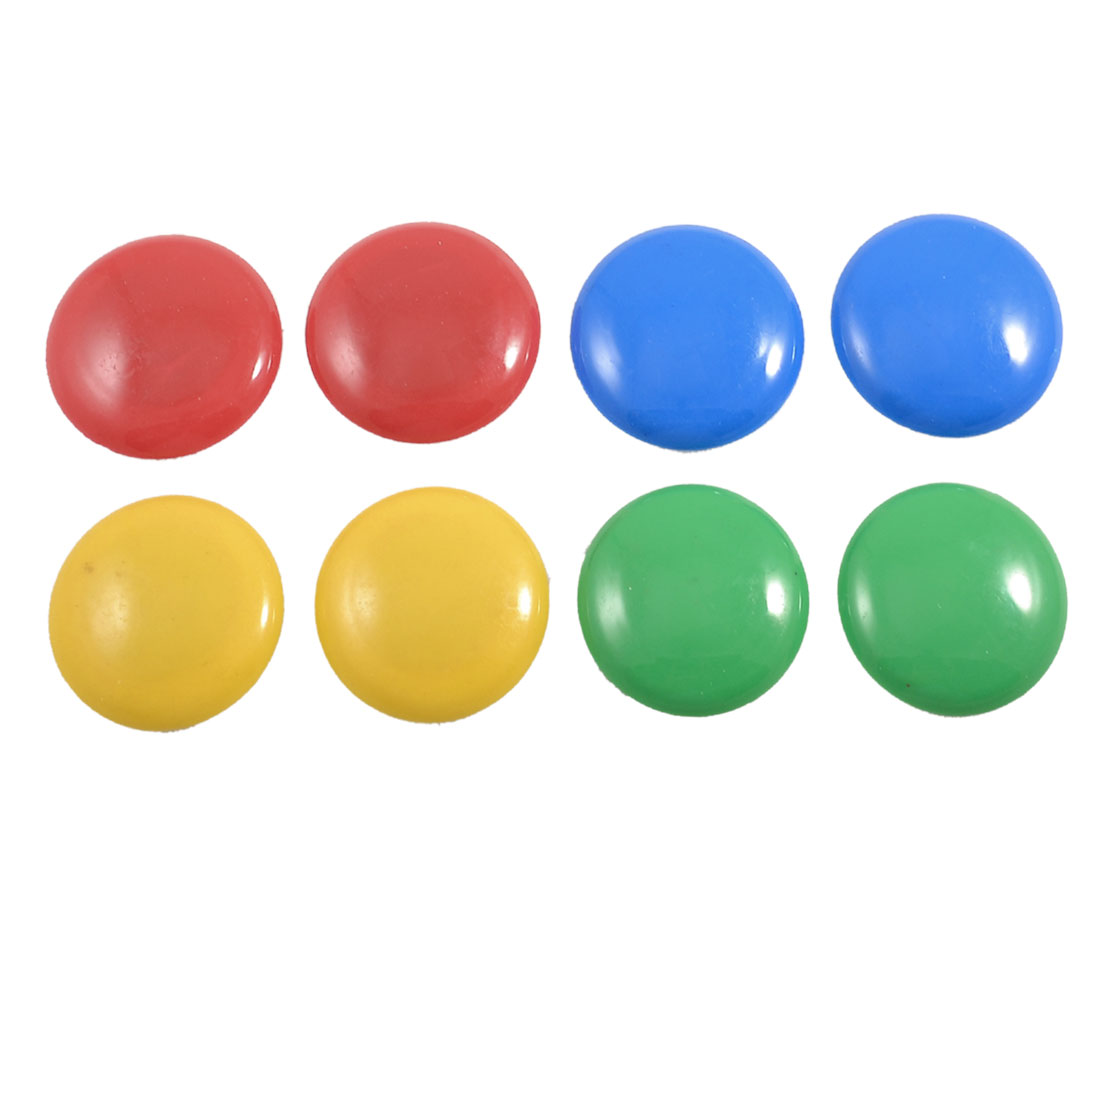 8 Pcs 39mm Dia Round Plastic Shell 4 Colors Refrigerator Magnets